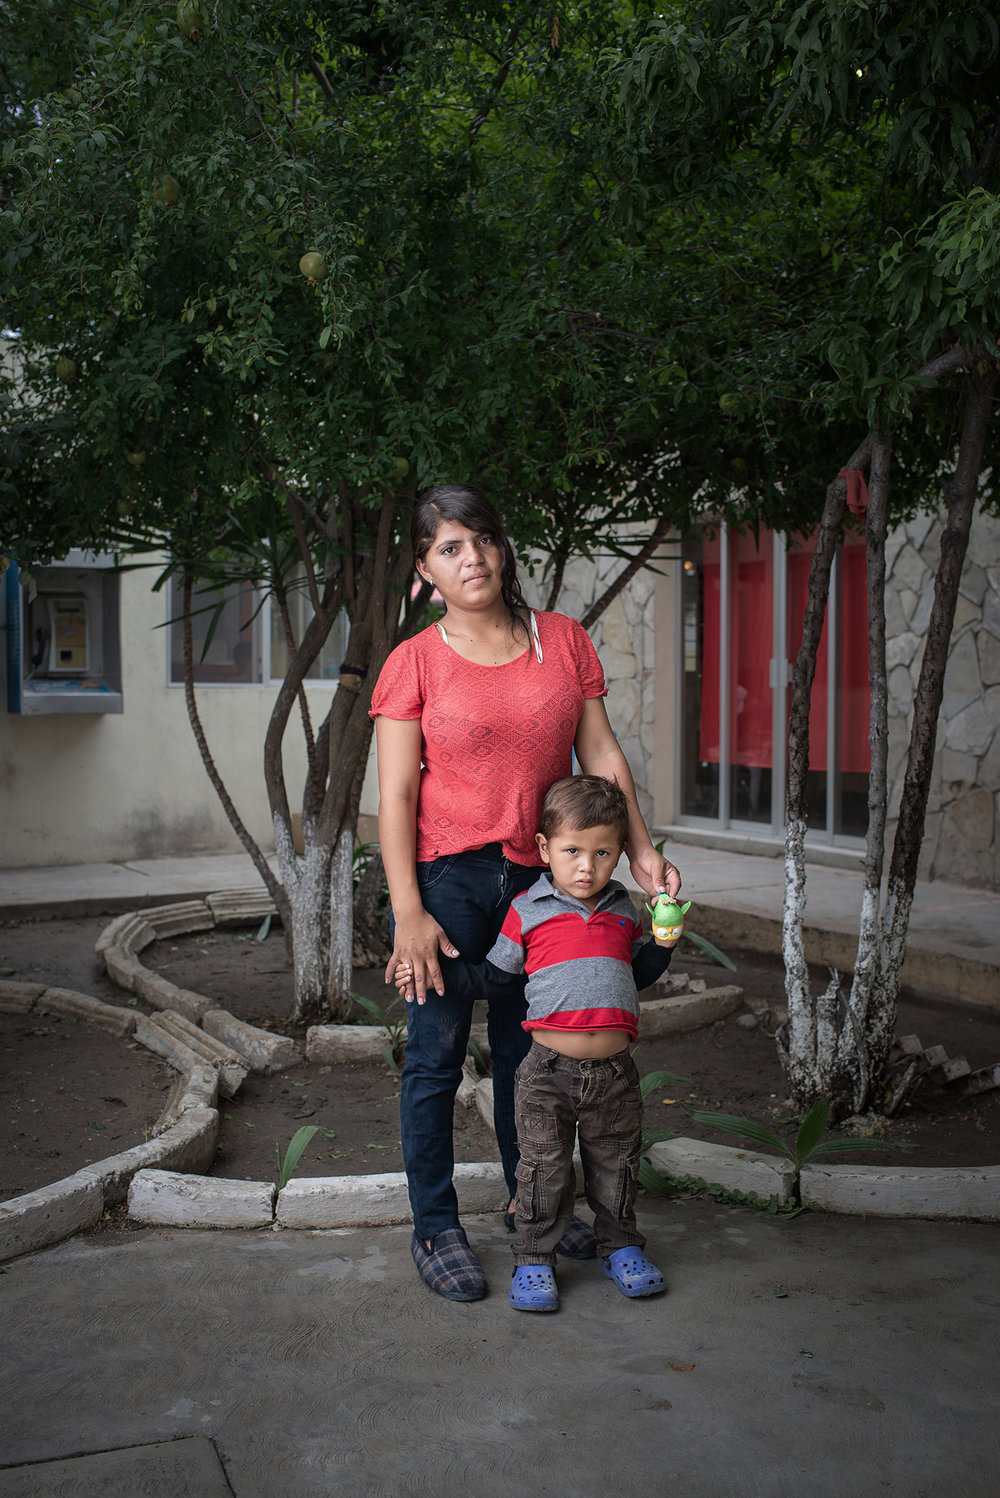 "Portrait of Diana Marisol (19 years old) and her son Denis Jose (3 years old) at ""Casa del Migrante Frontera Digna"" created by priest Jose Guadalupe Valdes Alvarado. Diana left her homecountry Honduras due to the violent situation her country is facing; ""I didn't want that future for my kid"", she said. ""Casa del Migrante Frontera Digna"" was created to provide lodging for migrants from different countries who arrive after long journeys that last several months to cross into the United States. Immigrants can spend three nights in the shelter where they are offered beds, food, hygiene items and a space to regain strength. Piedras Negras, Coahuila, Mexico. June 21st, 2018. Photographer: Luján Agusti."